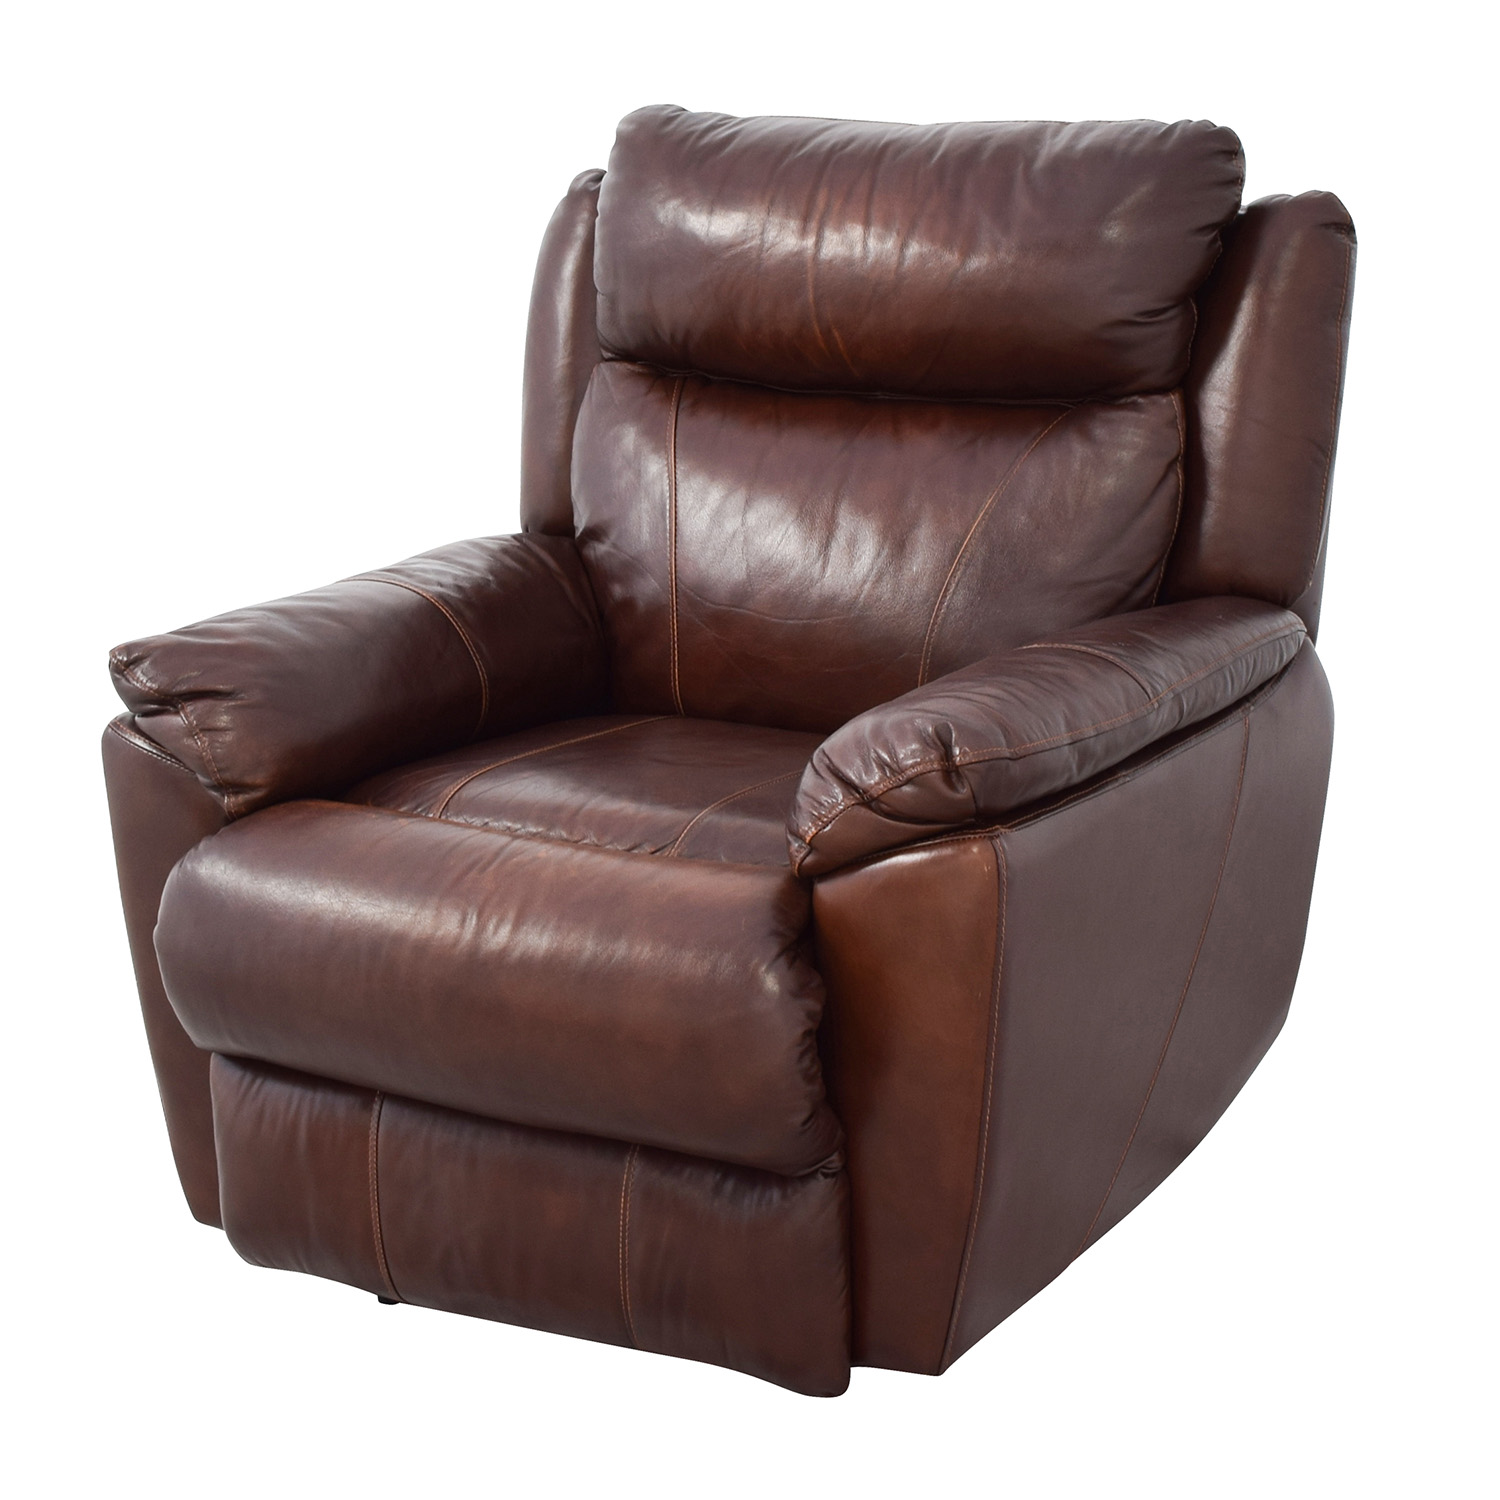 61 OFF Macys Macys Brown Leather Power Recliner Chairs